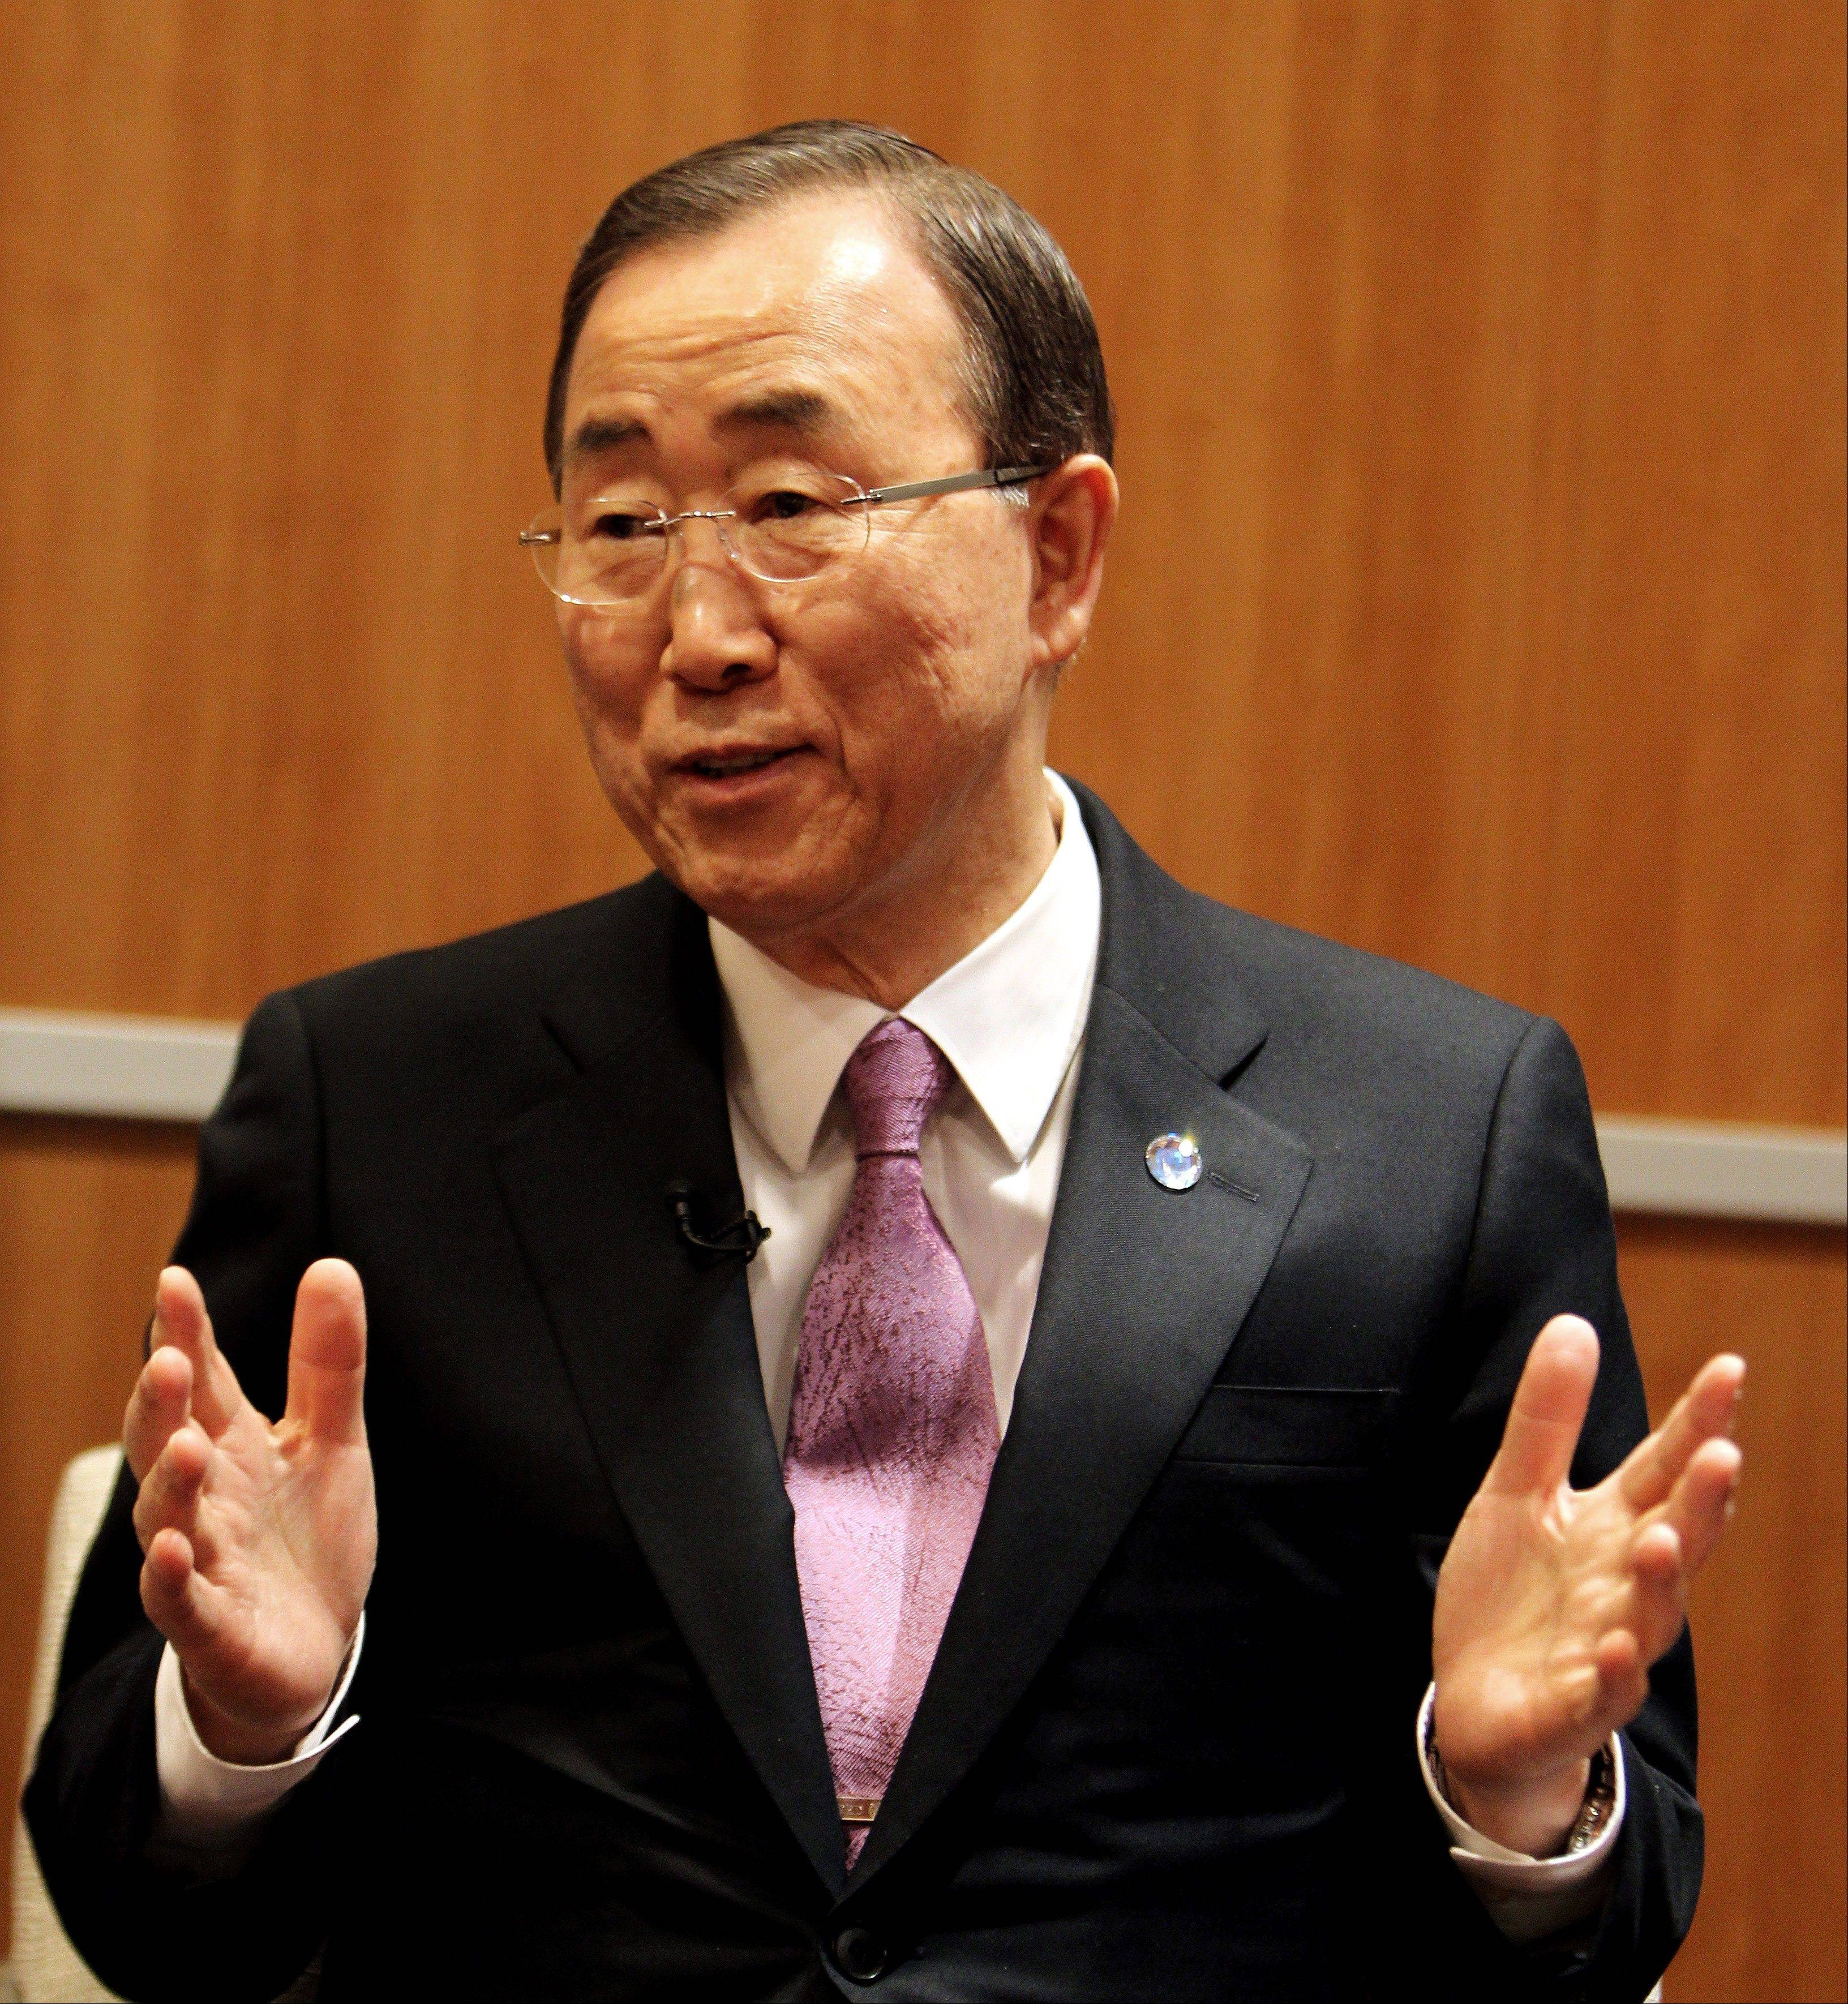 U.N. Secretary-General Ban Ki-moon speaks to a journalist Wednesday during an exclusive interview with The Associated Press. Ban has hinted that he would not favor an asylum deal for Syrian President Bashir Assad as a way to end the country's civil war.